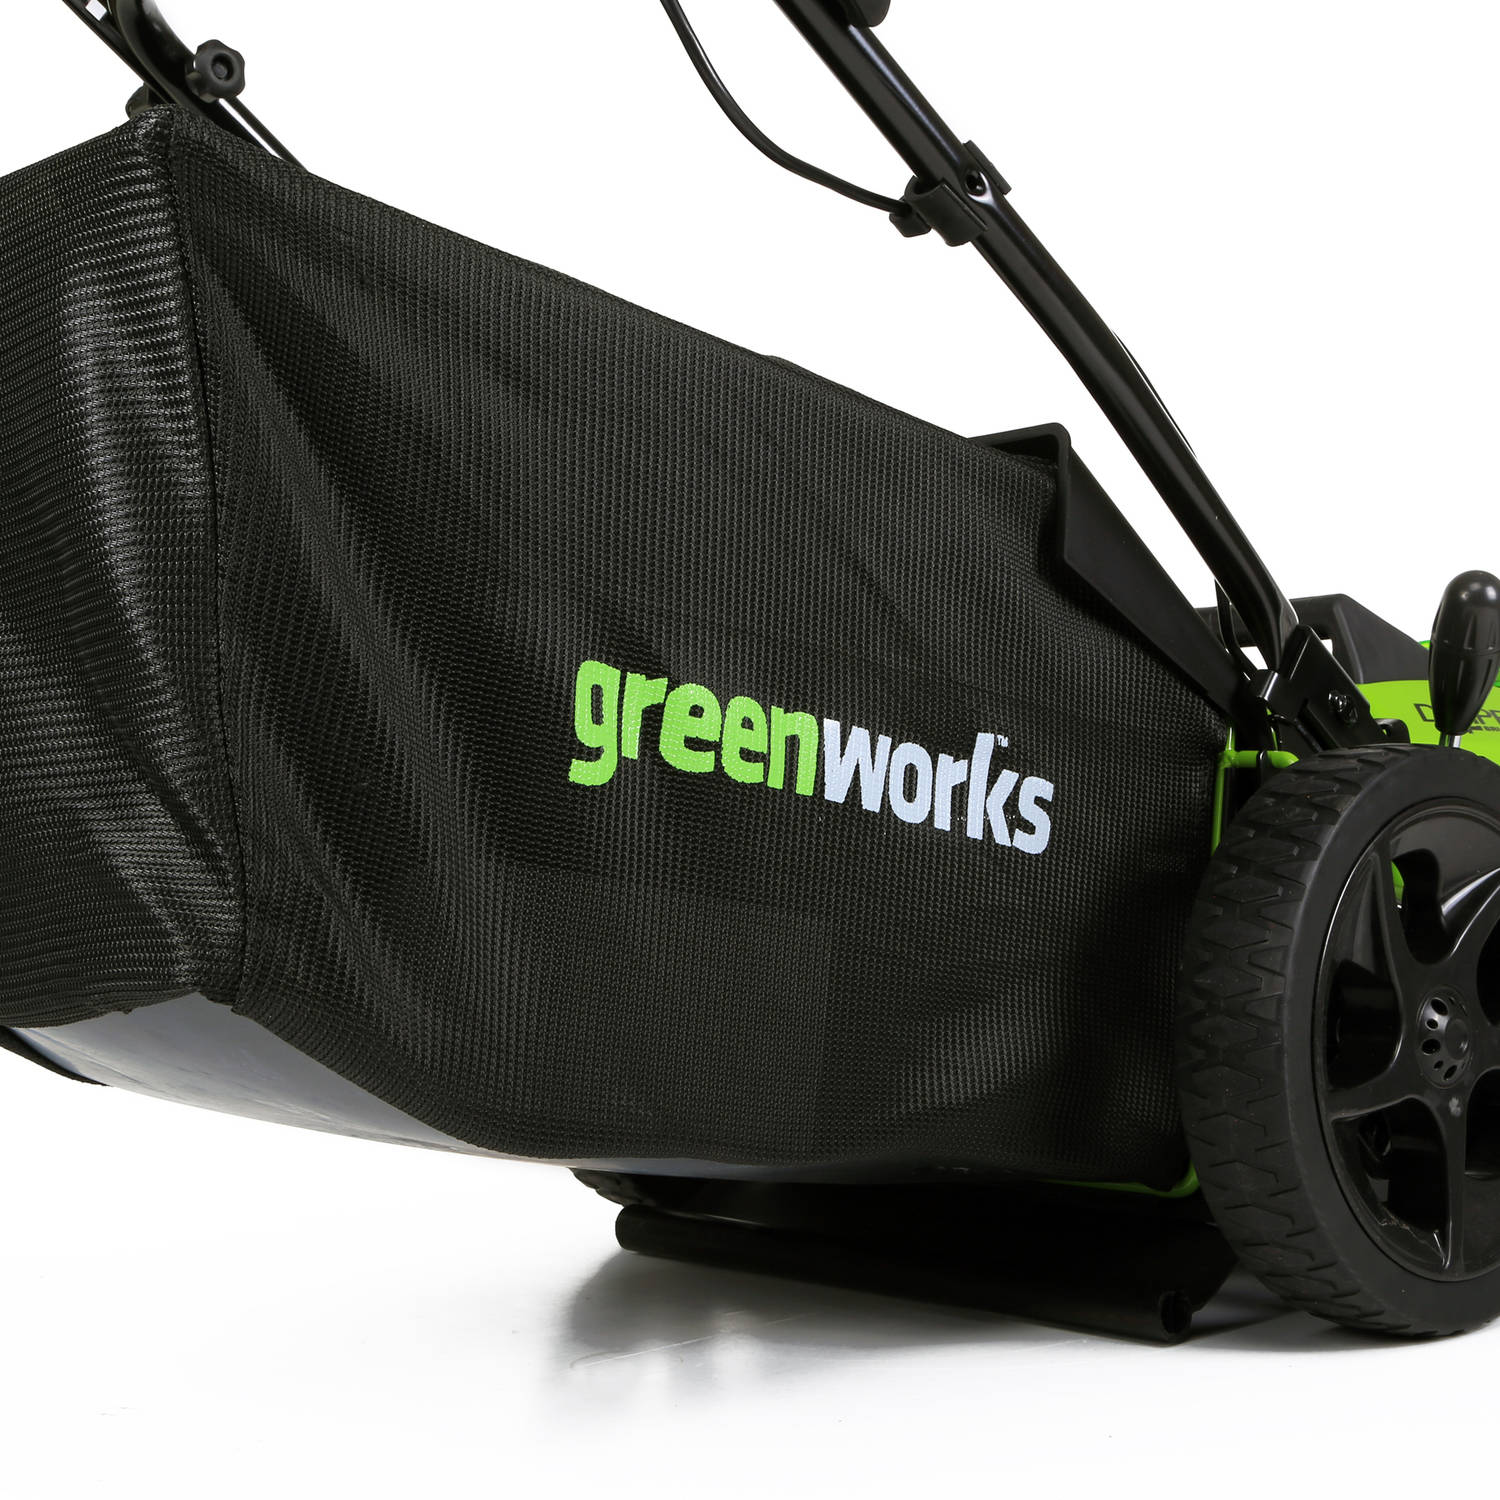 Greenworks 2501302 40v 19 Quot Cordless Lawn Mower Battery And Charger Sold Separa Ebay